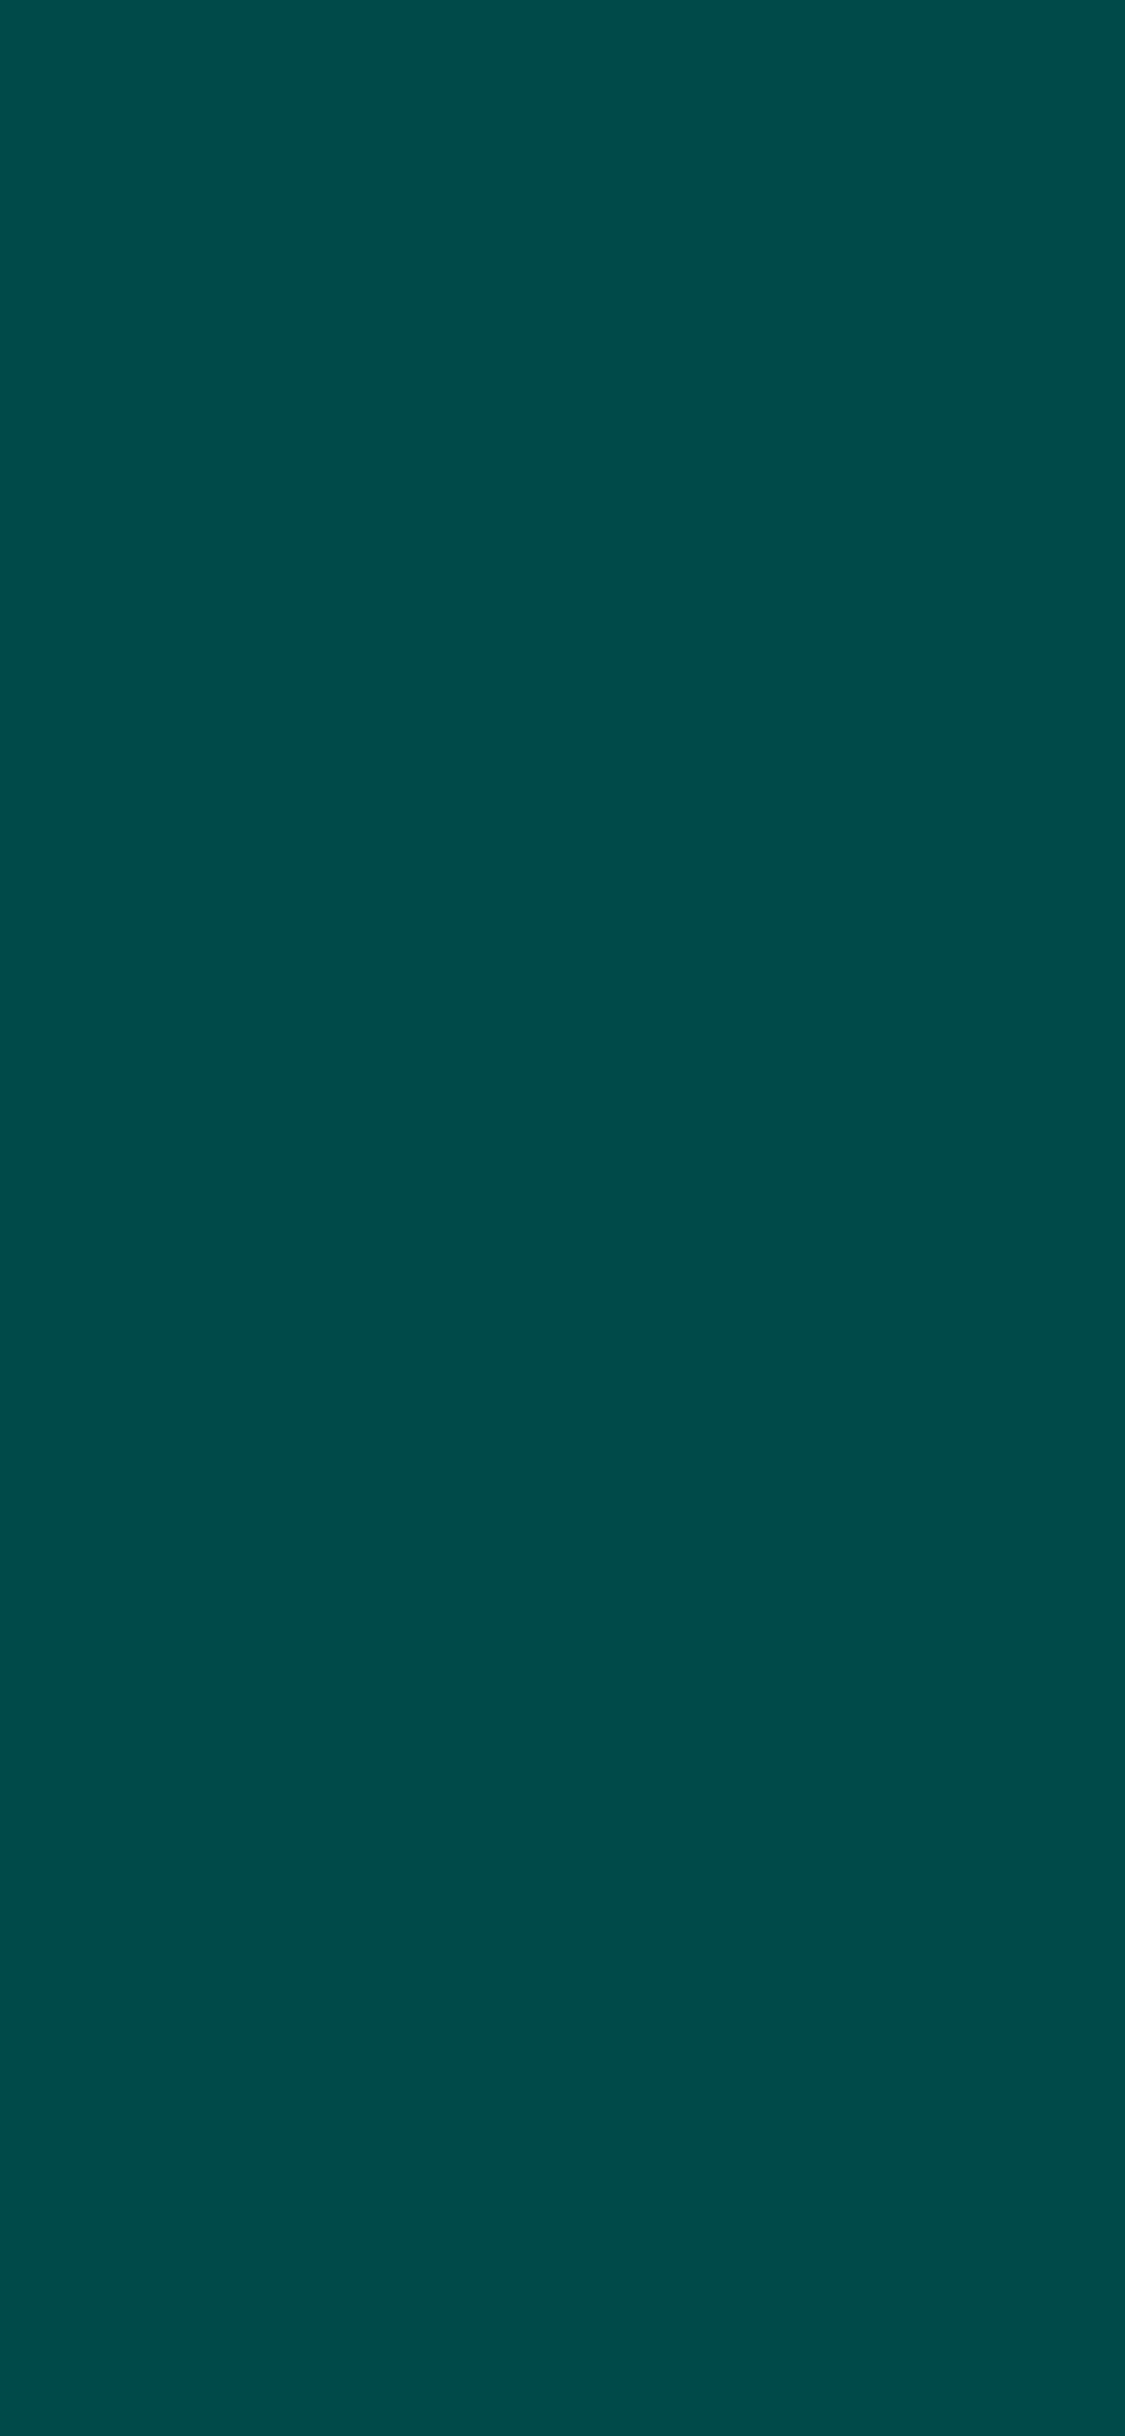 1125x2436 Deep Jungle Green Solid Color Background